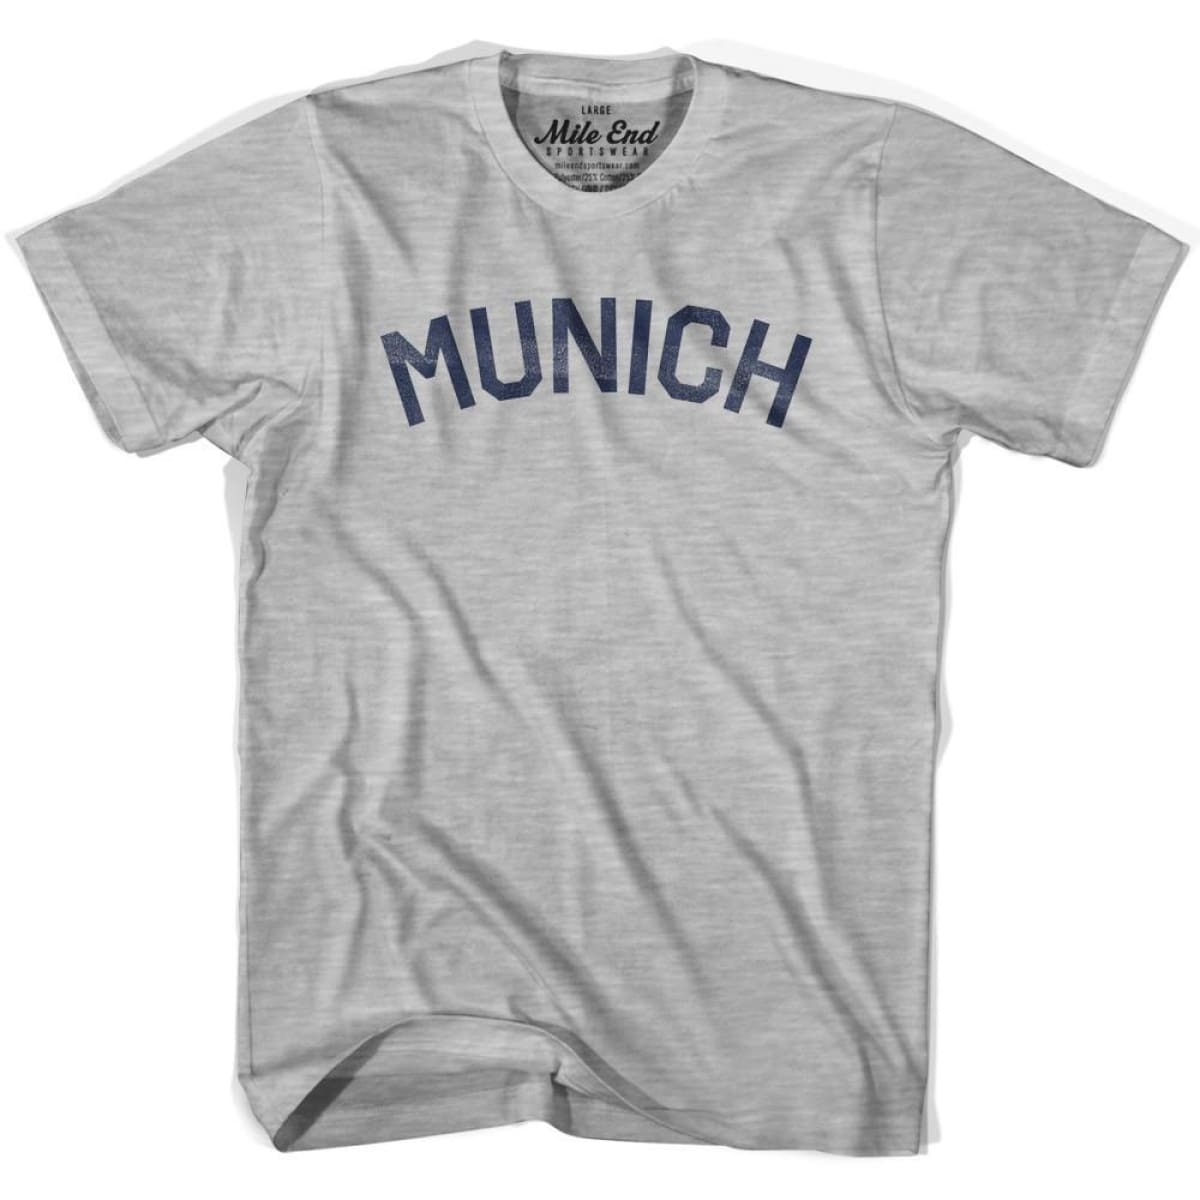 Munich City Vintage T-shirt - Grey Heather / Youth Small - Mile End City